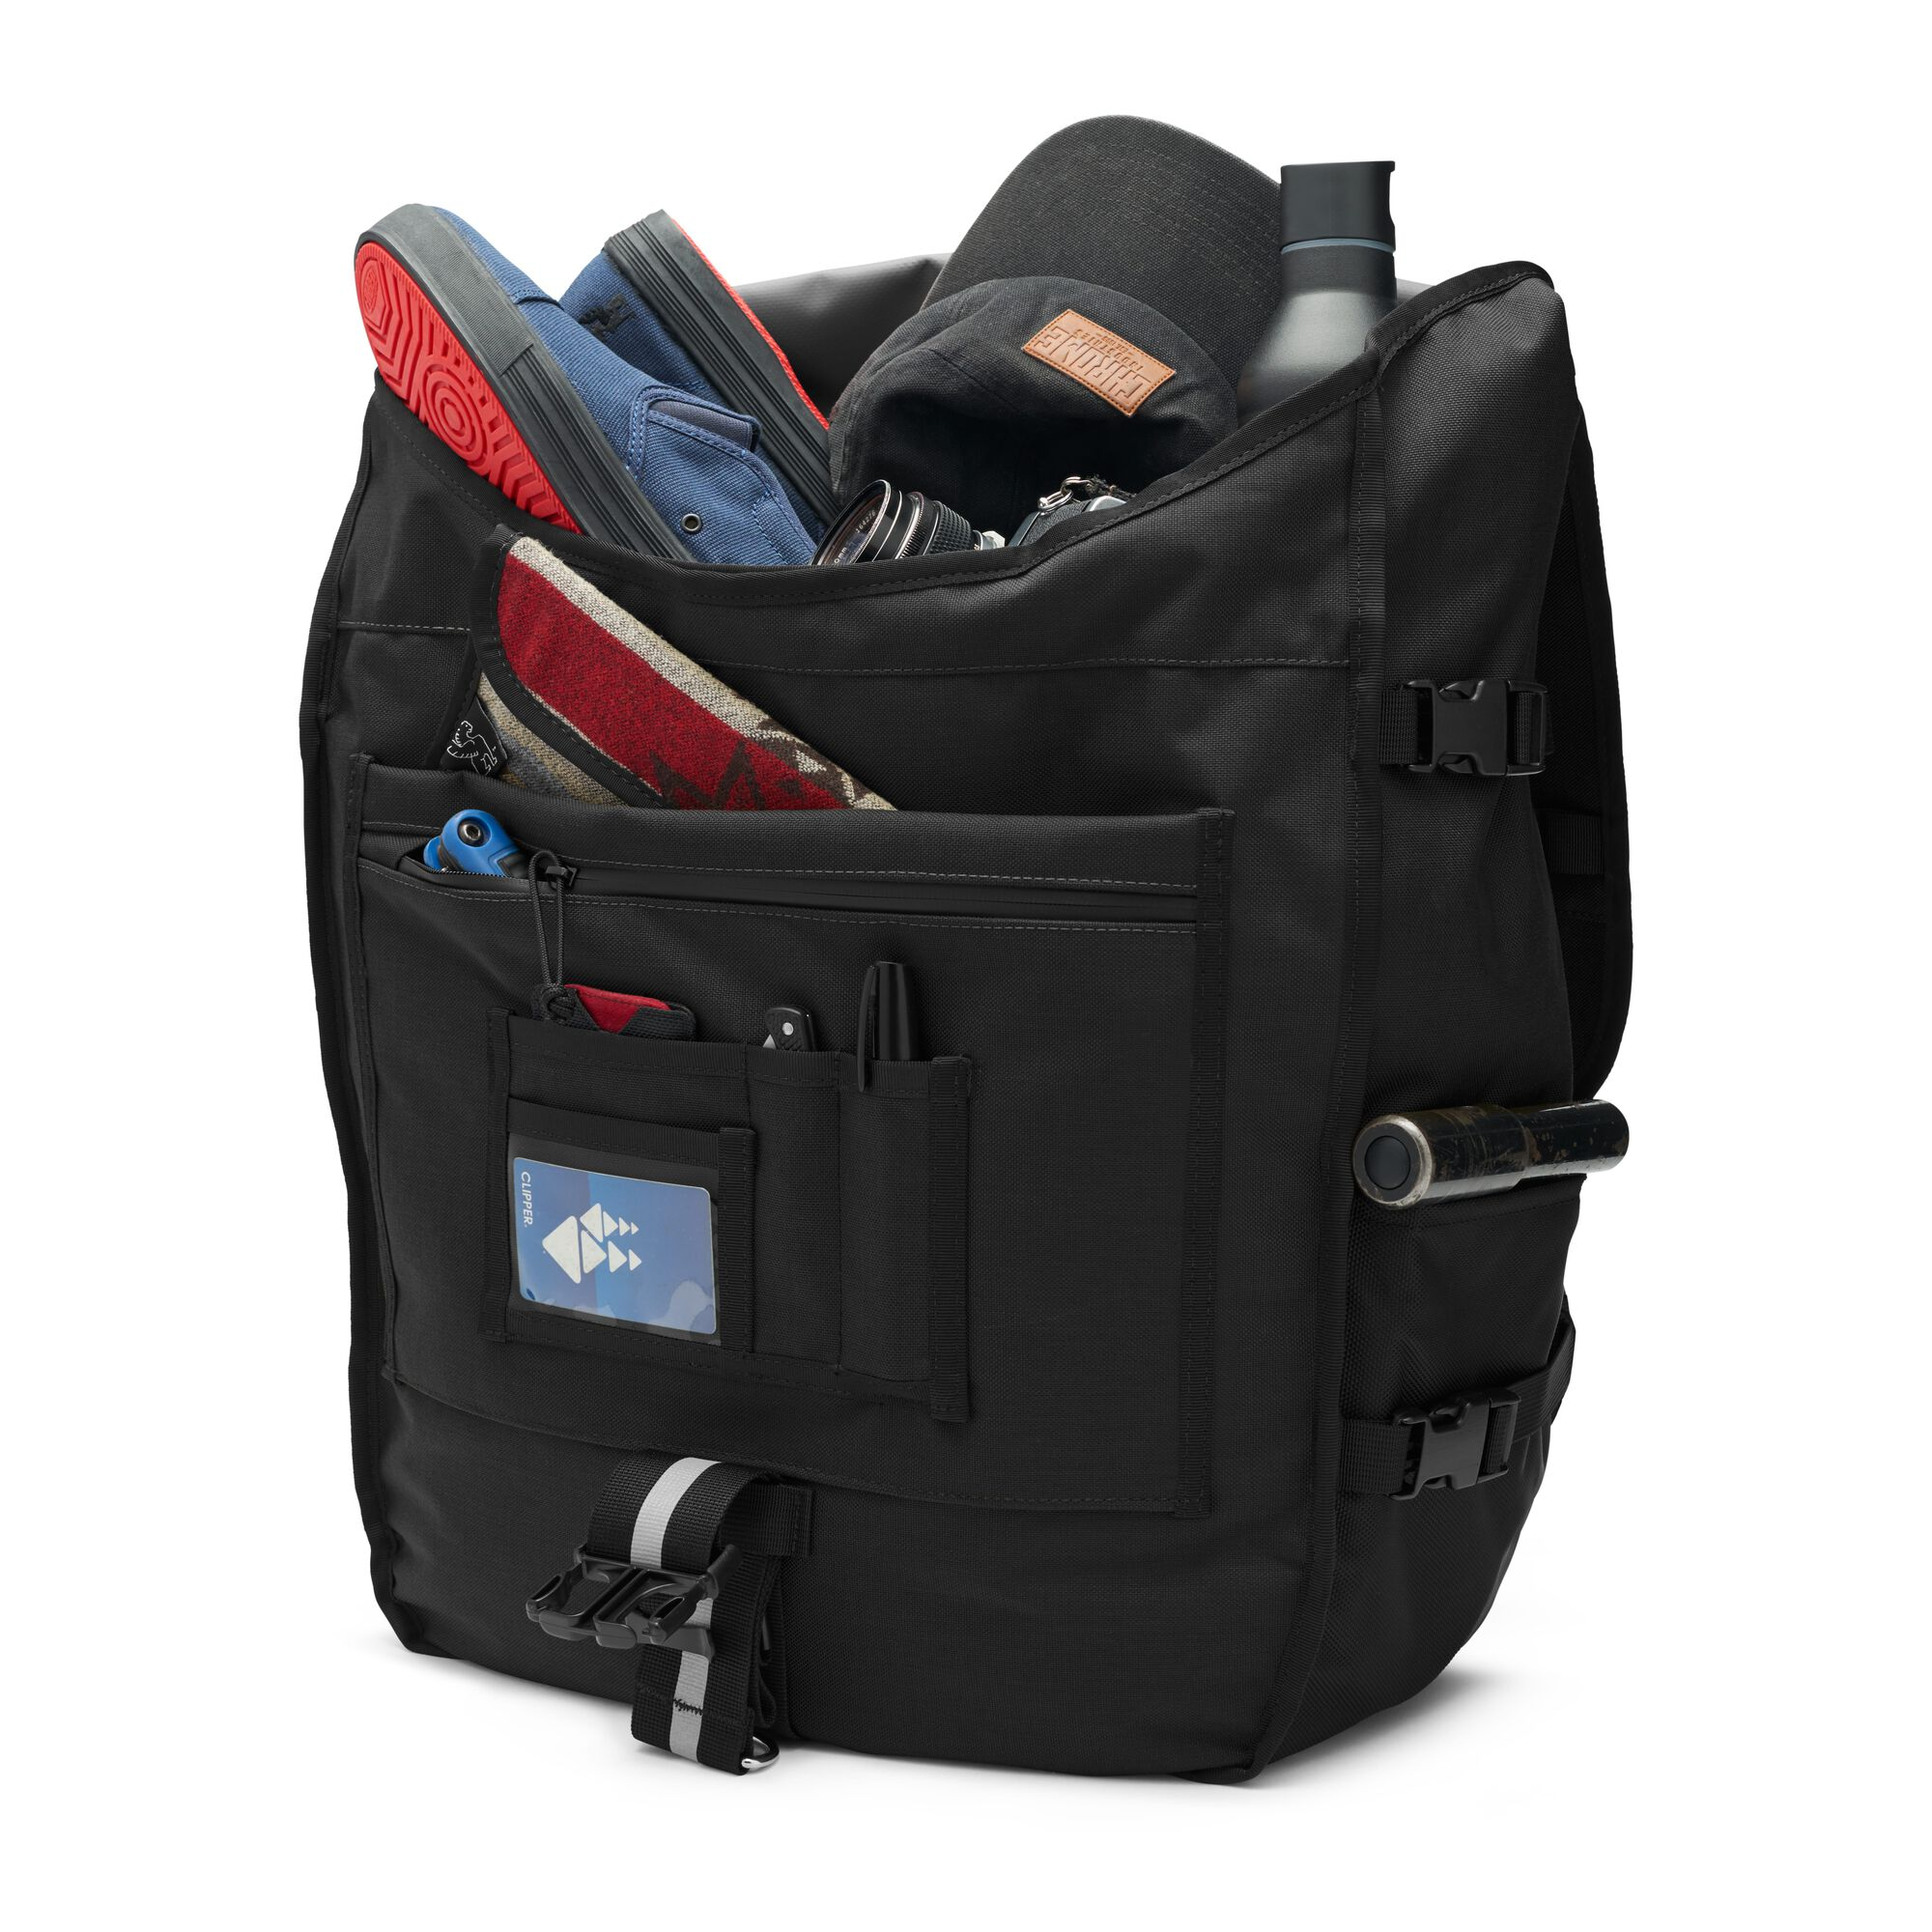 5f9a3500e2 Warsaw II Messenger Backpack - Fits laptops up to 17